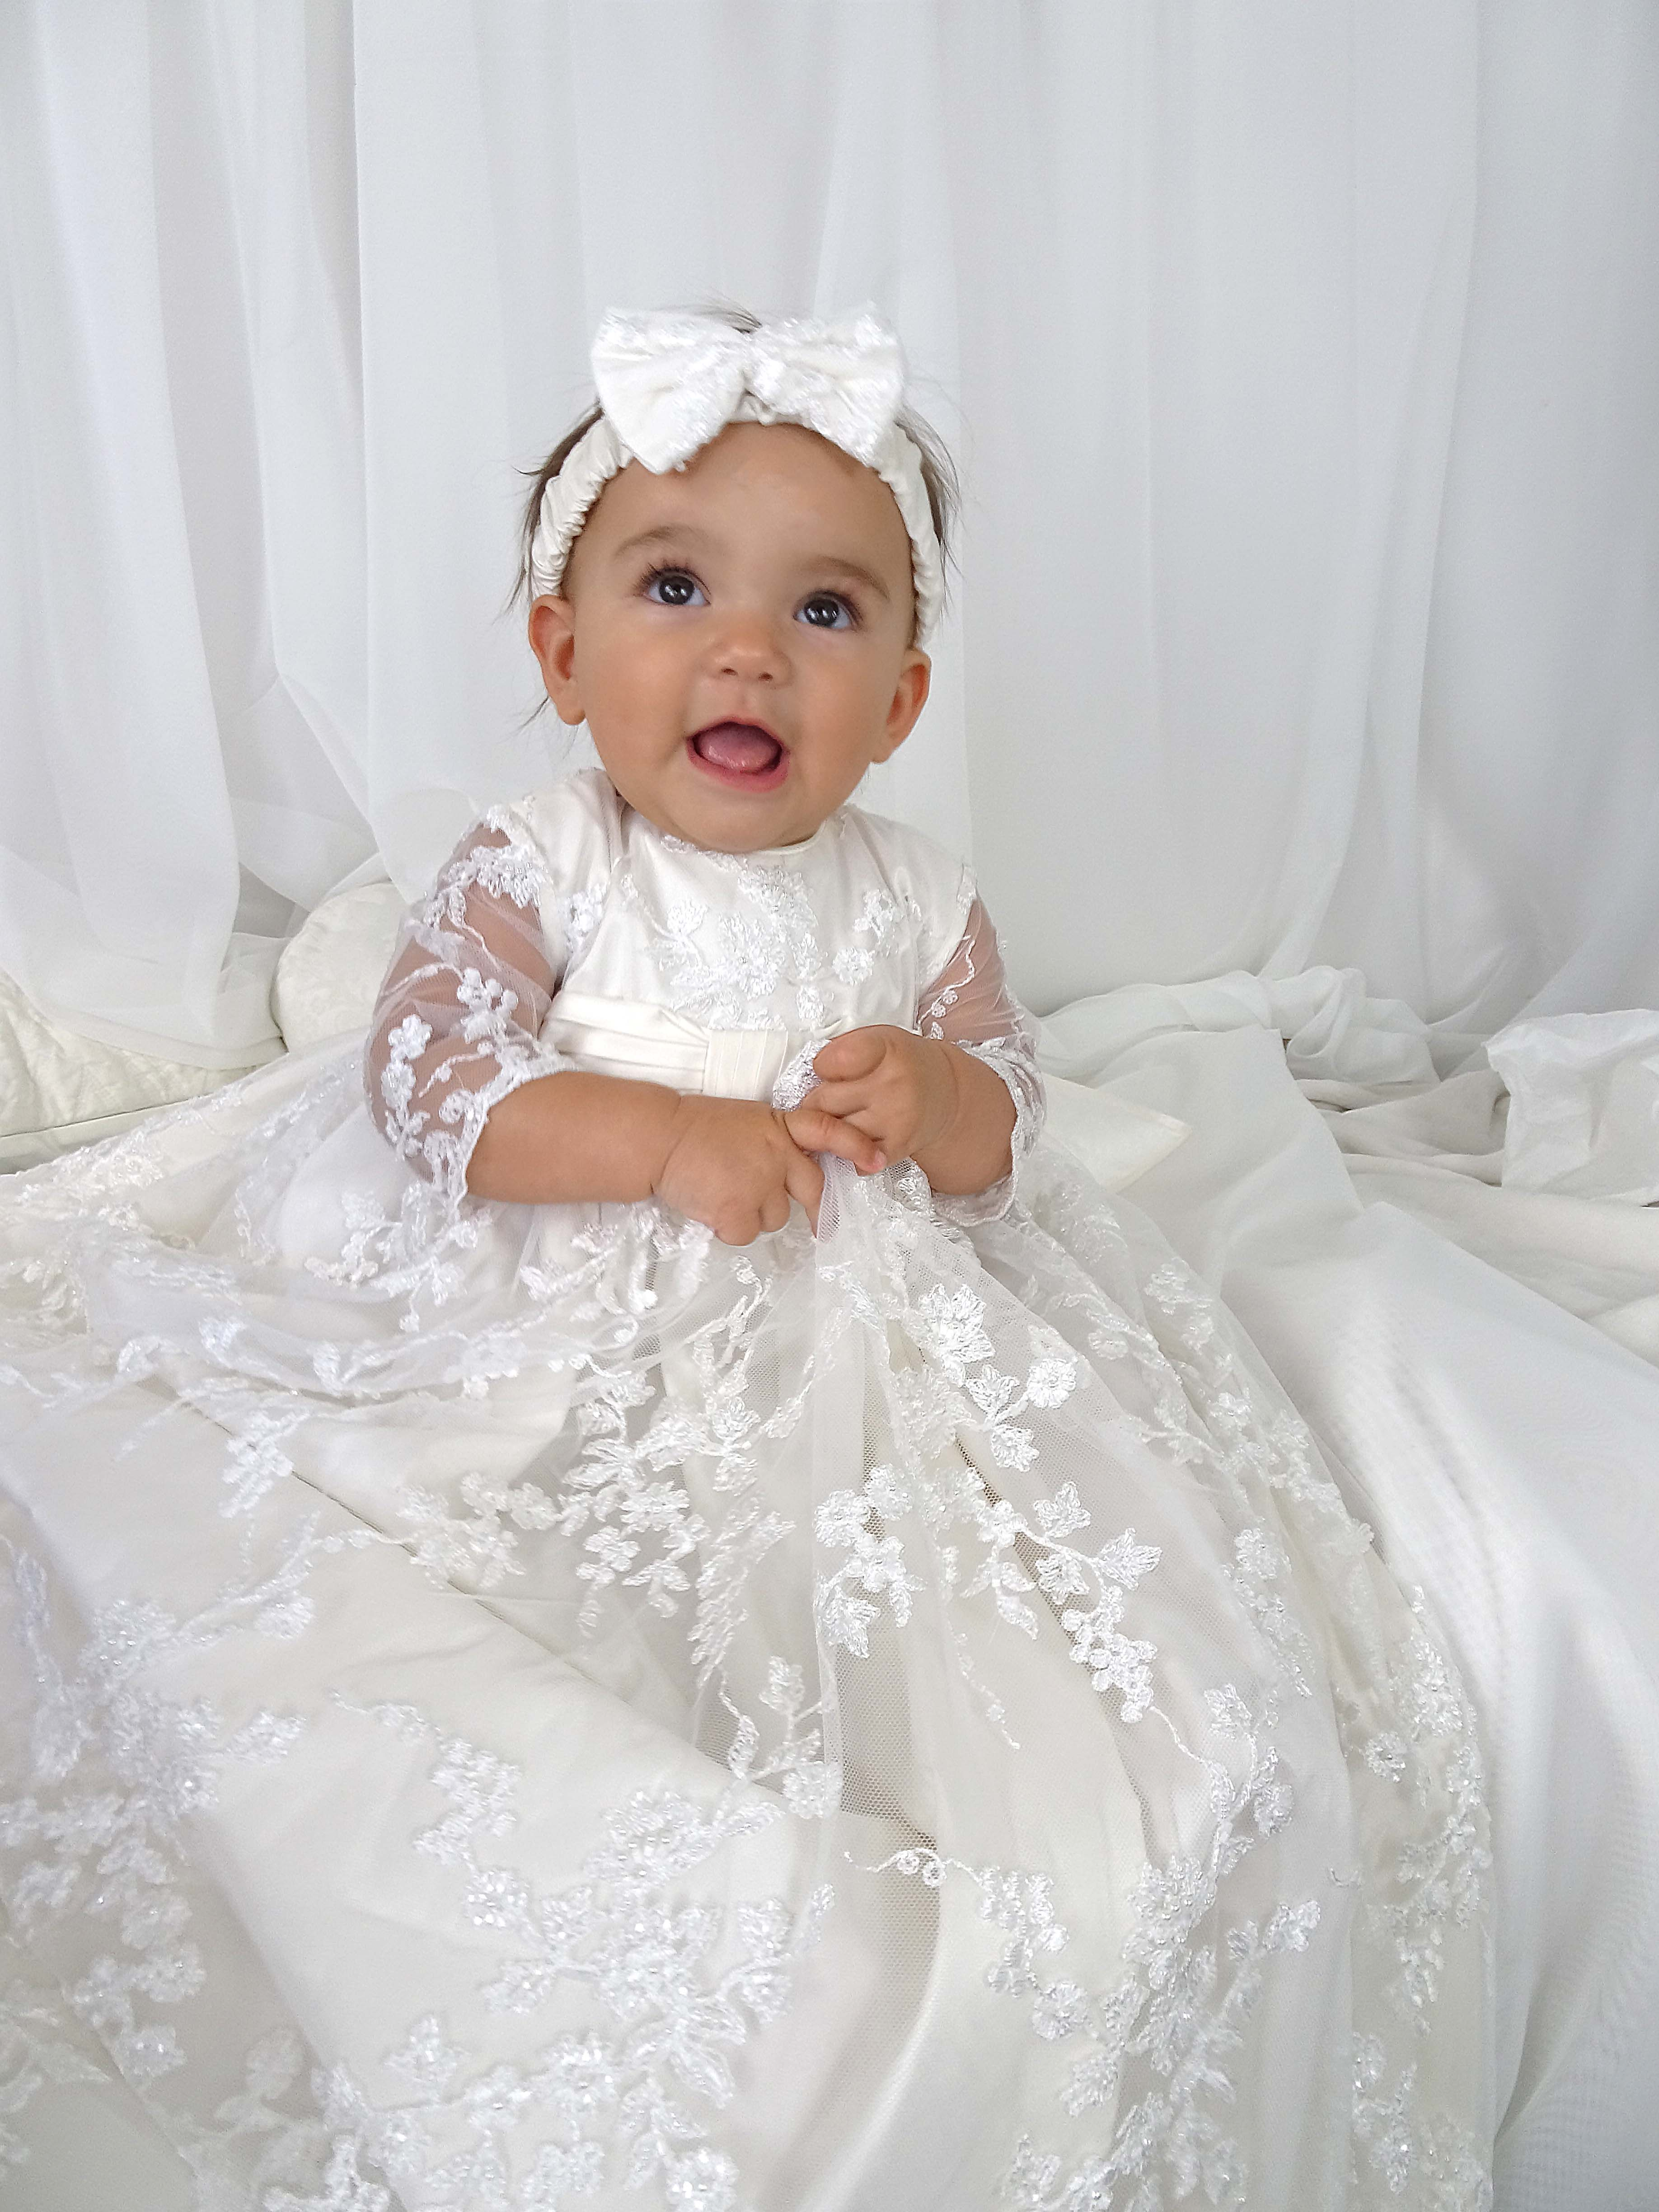 4239b White Lace Girls Silk Christening Gown Delicate